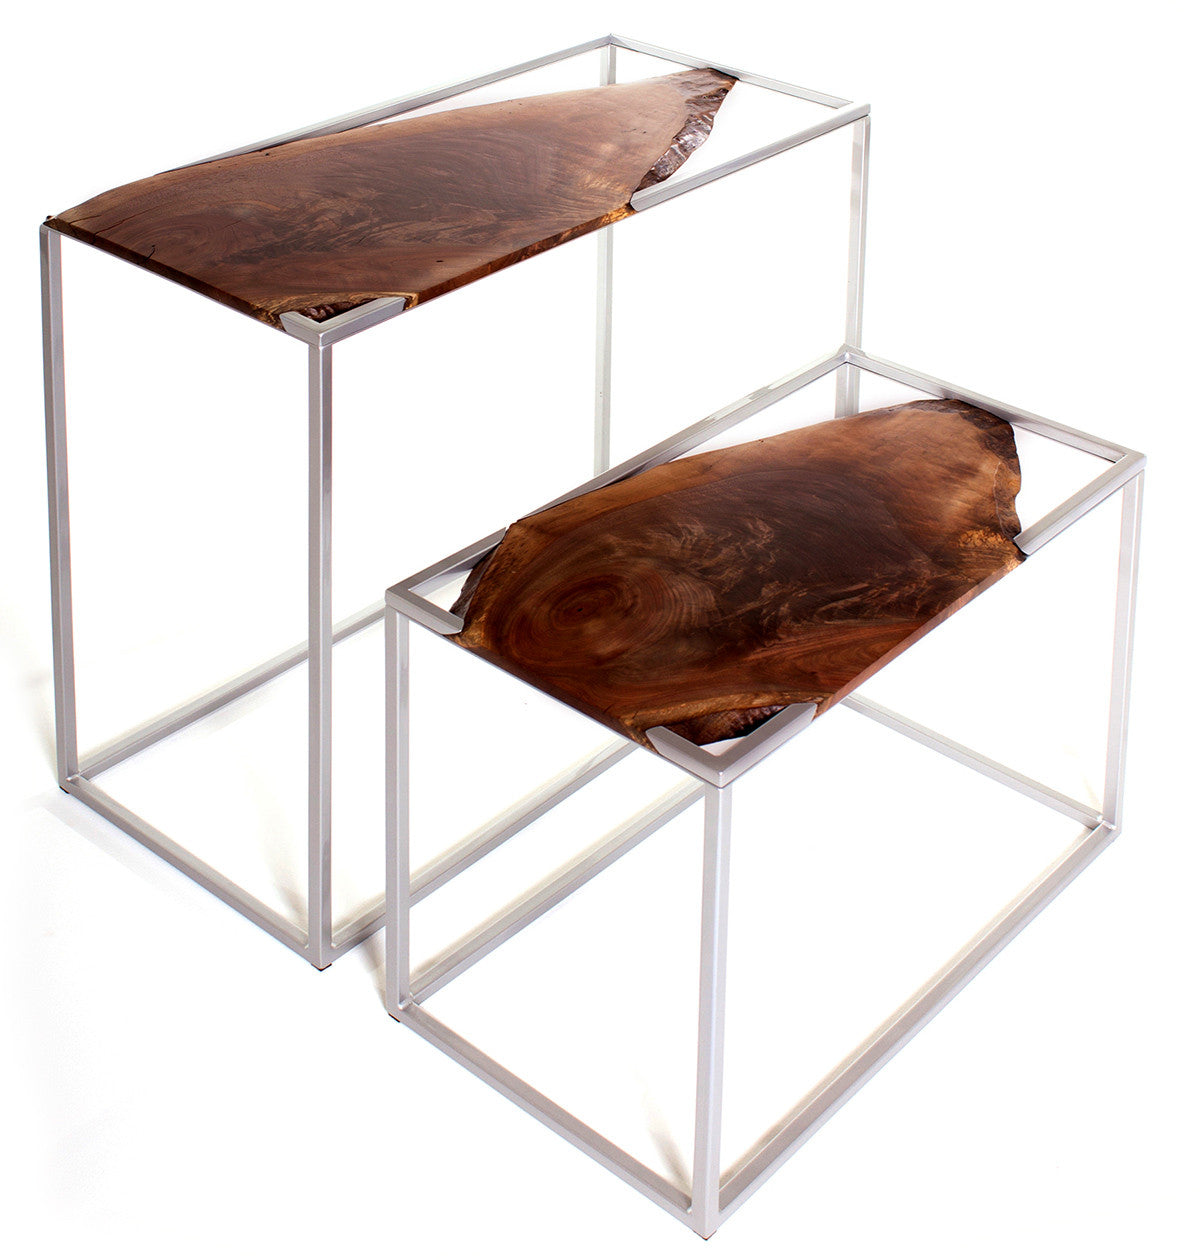 Transition Tables / 34 x 30 x 15 and 27 x 20 x 13.5 / walnut and painted steel